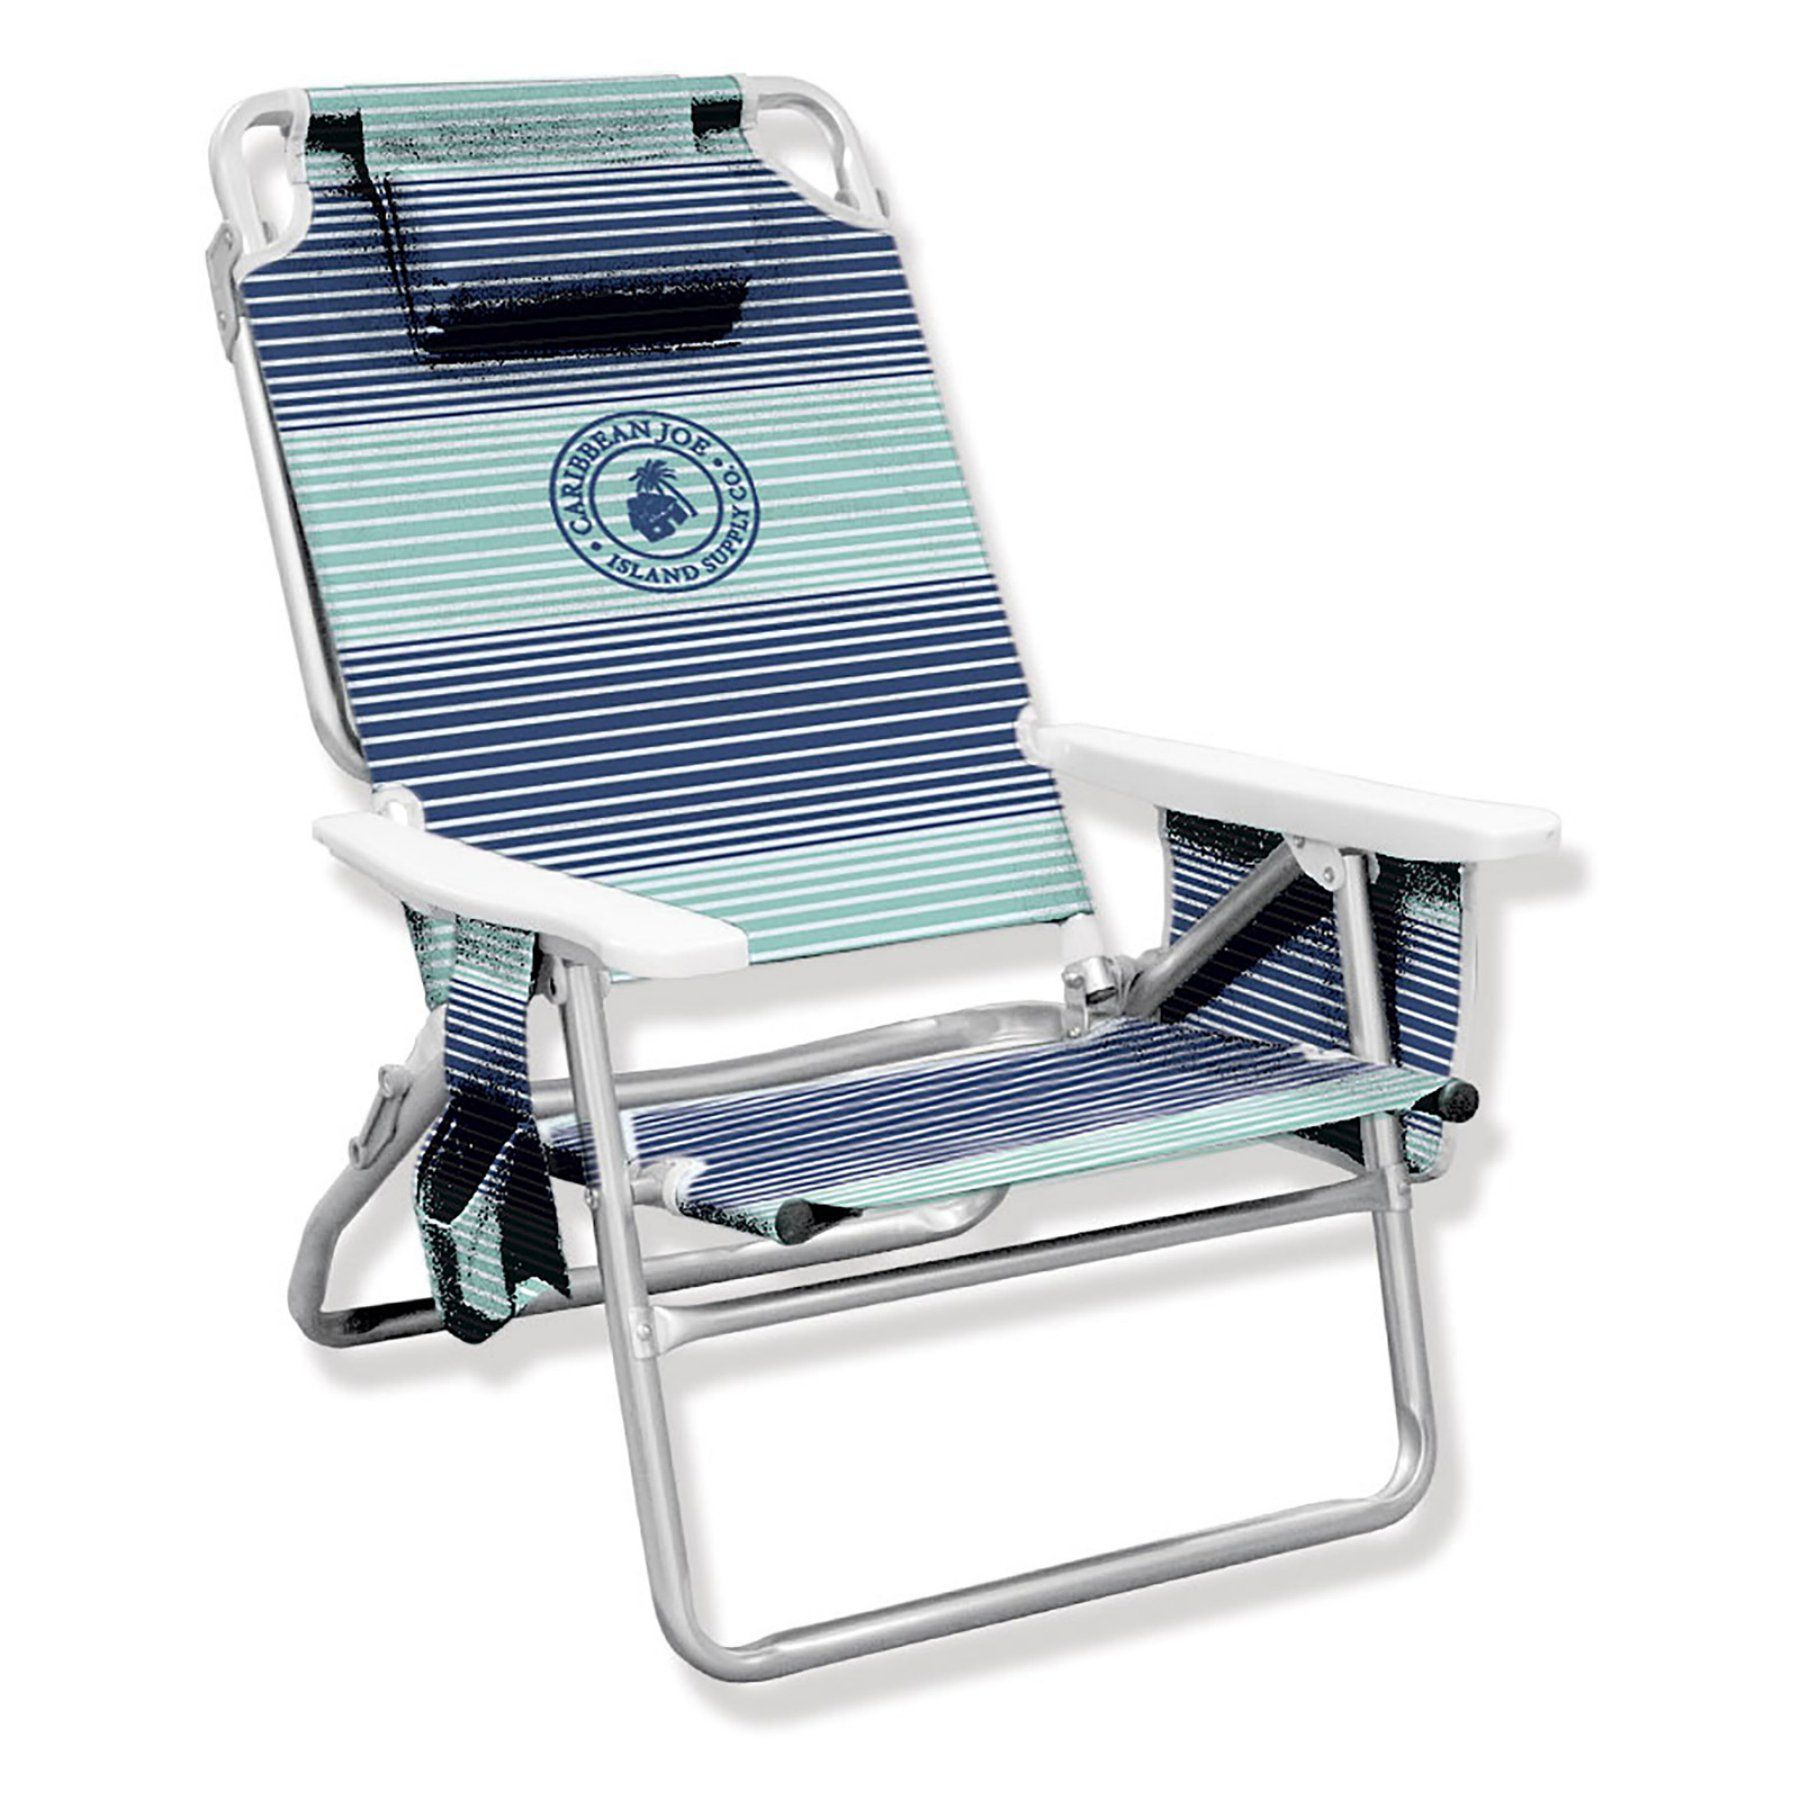 Low Folding Beach Chair Caribbean Joe 5 Position Folding Low Beach Chair Cj 7750hs